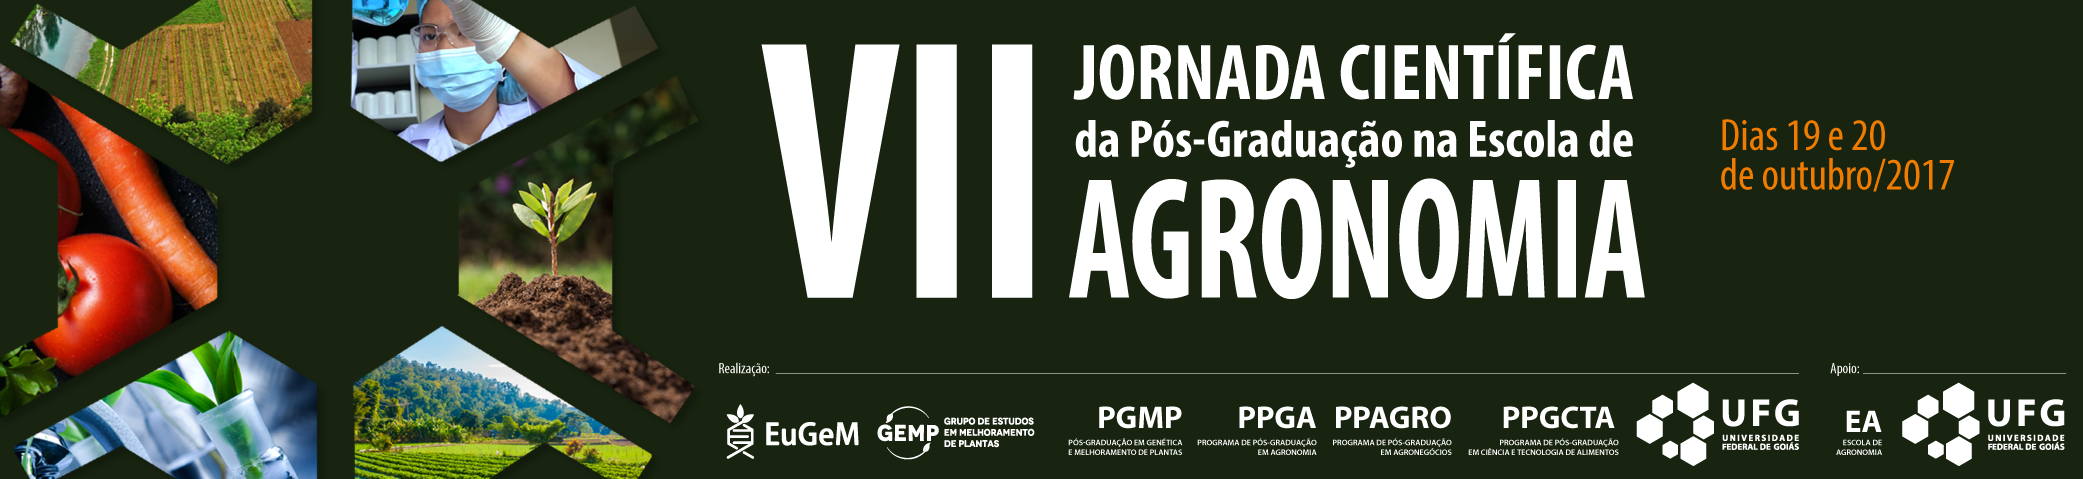 banner2_1000x230_jornada_agronomiabb-01.png